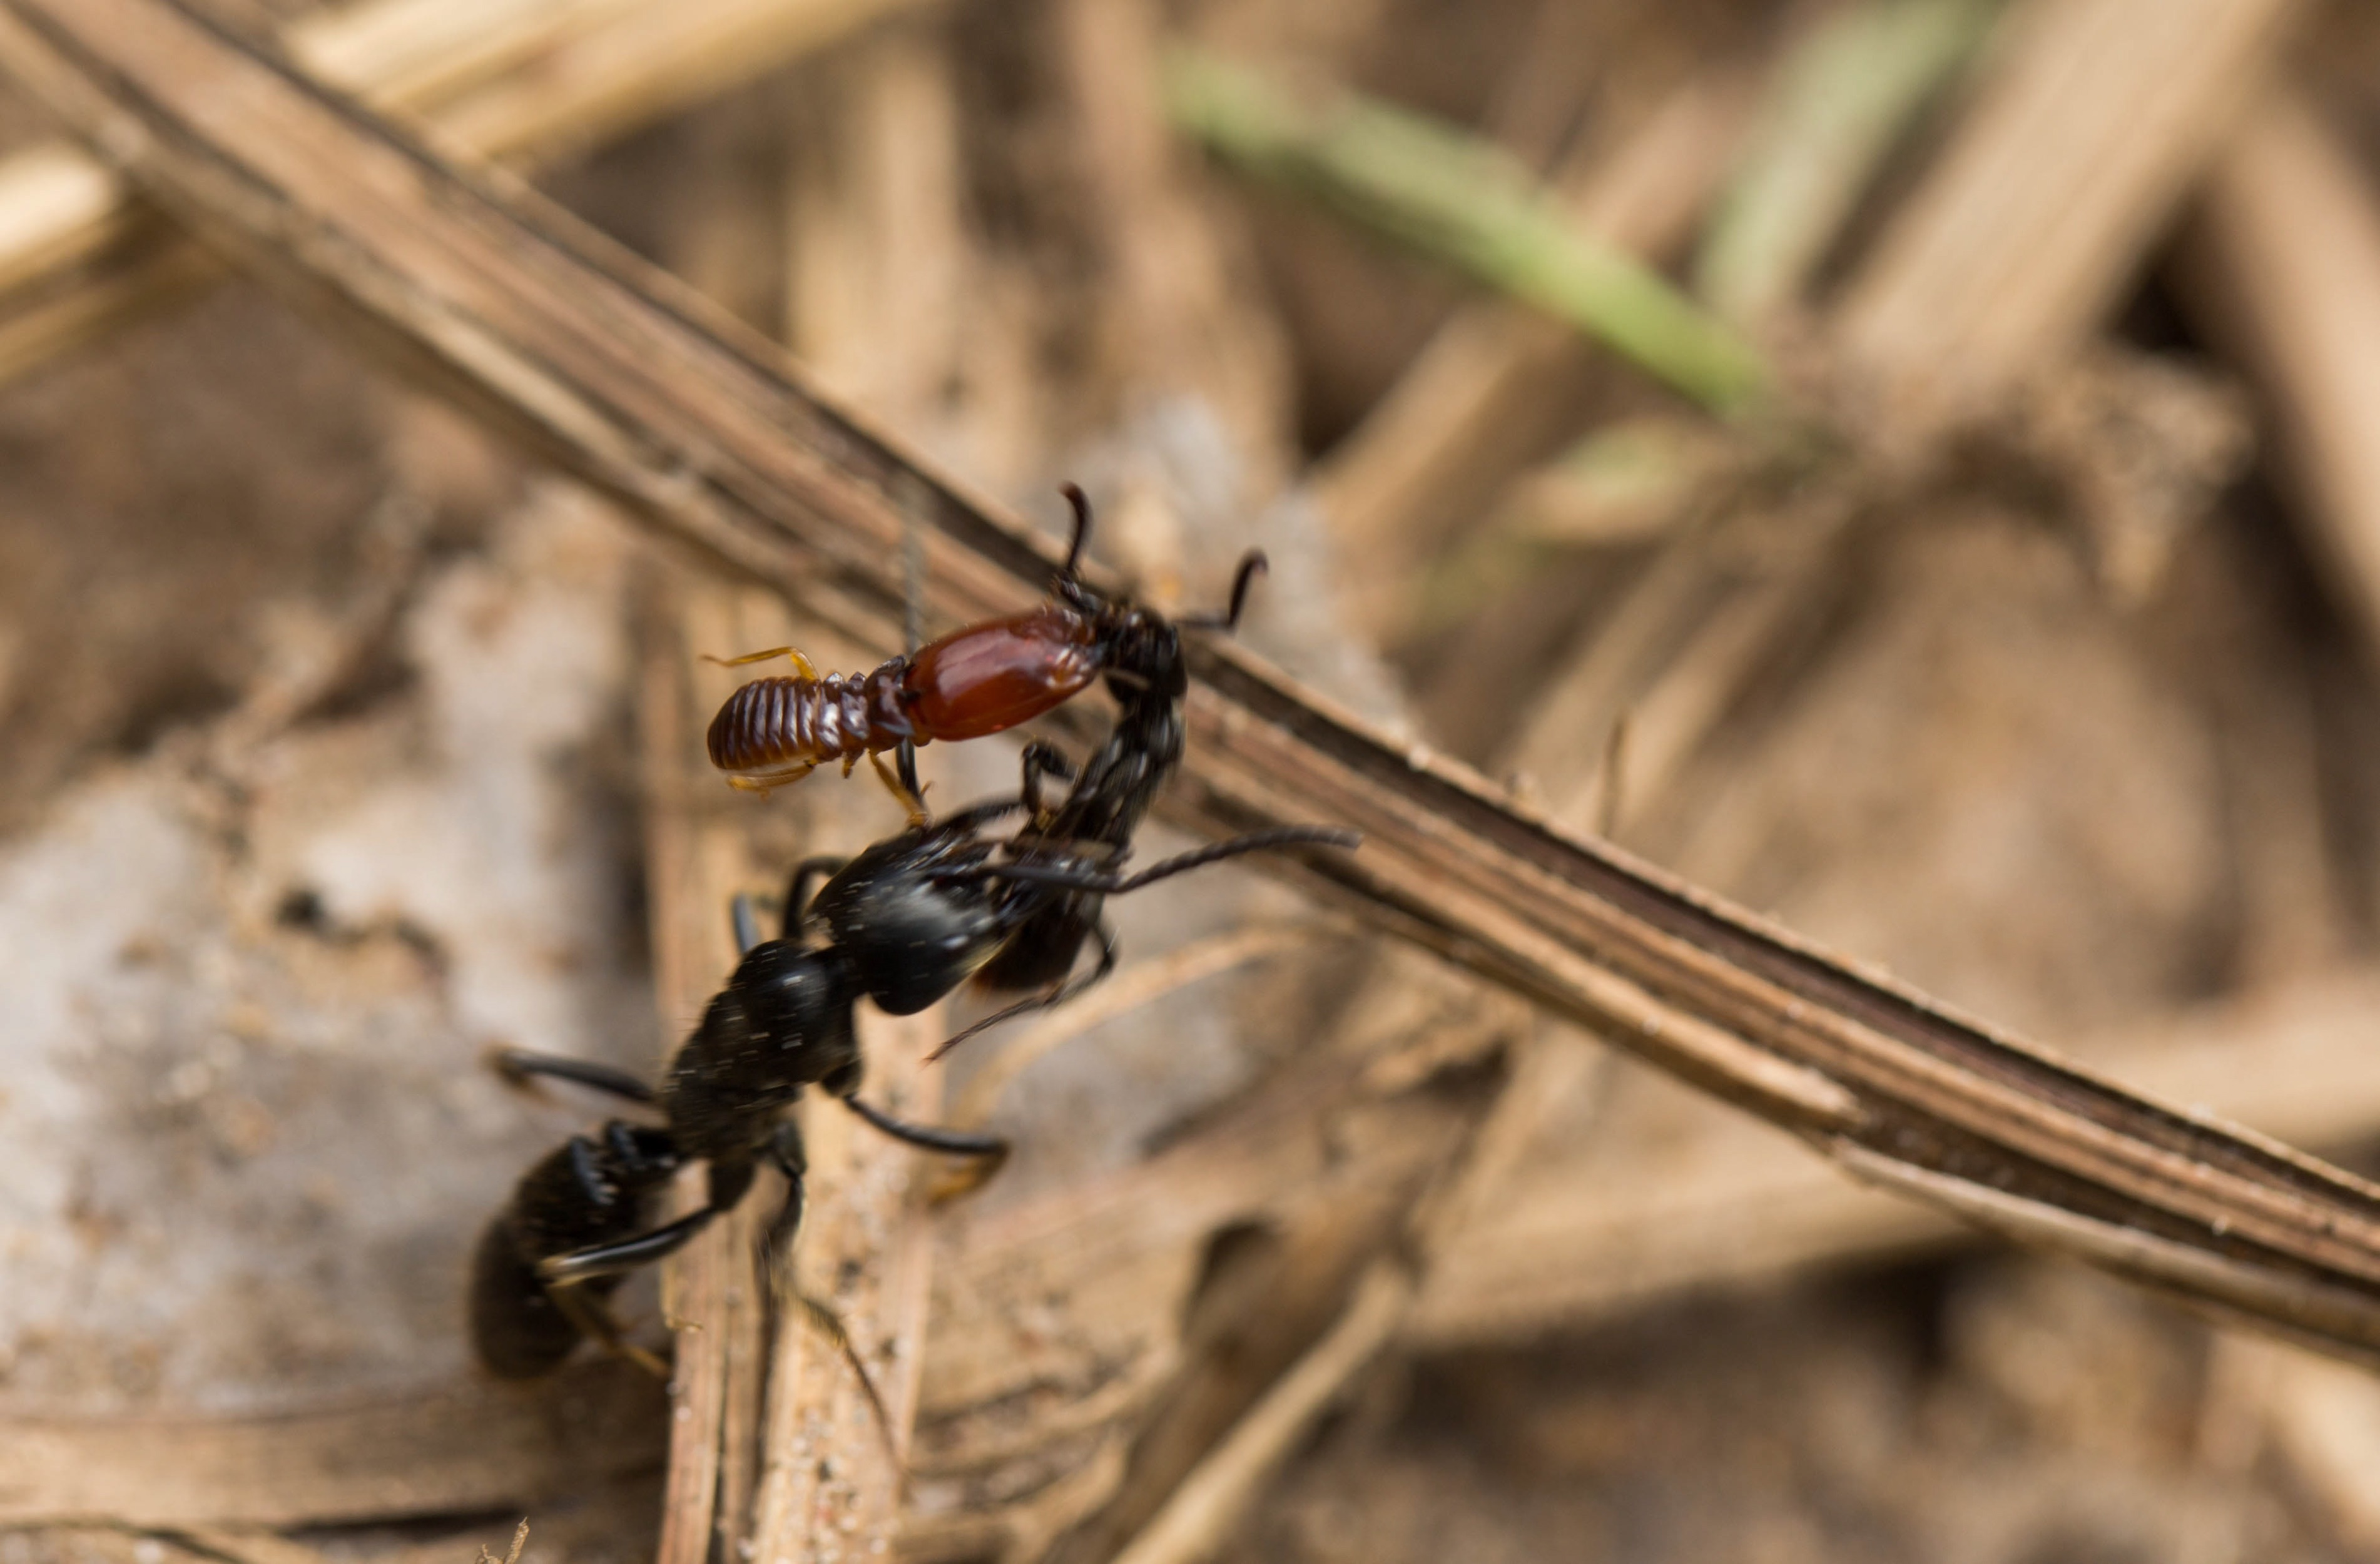 An ant handicapped by a clinging termite is carried off by a foraging African stink ant. Credit: Erik Frank